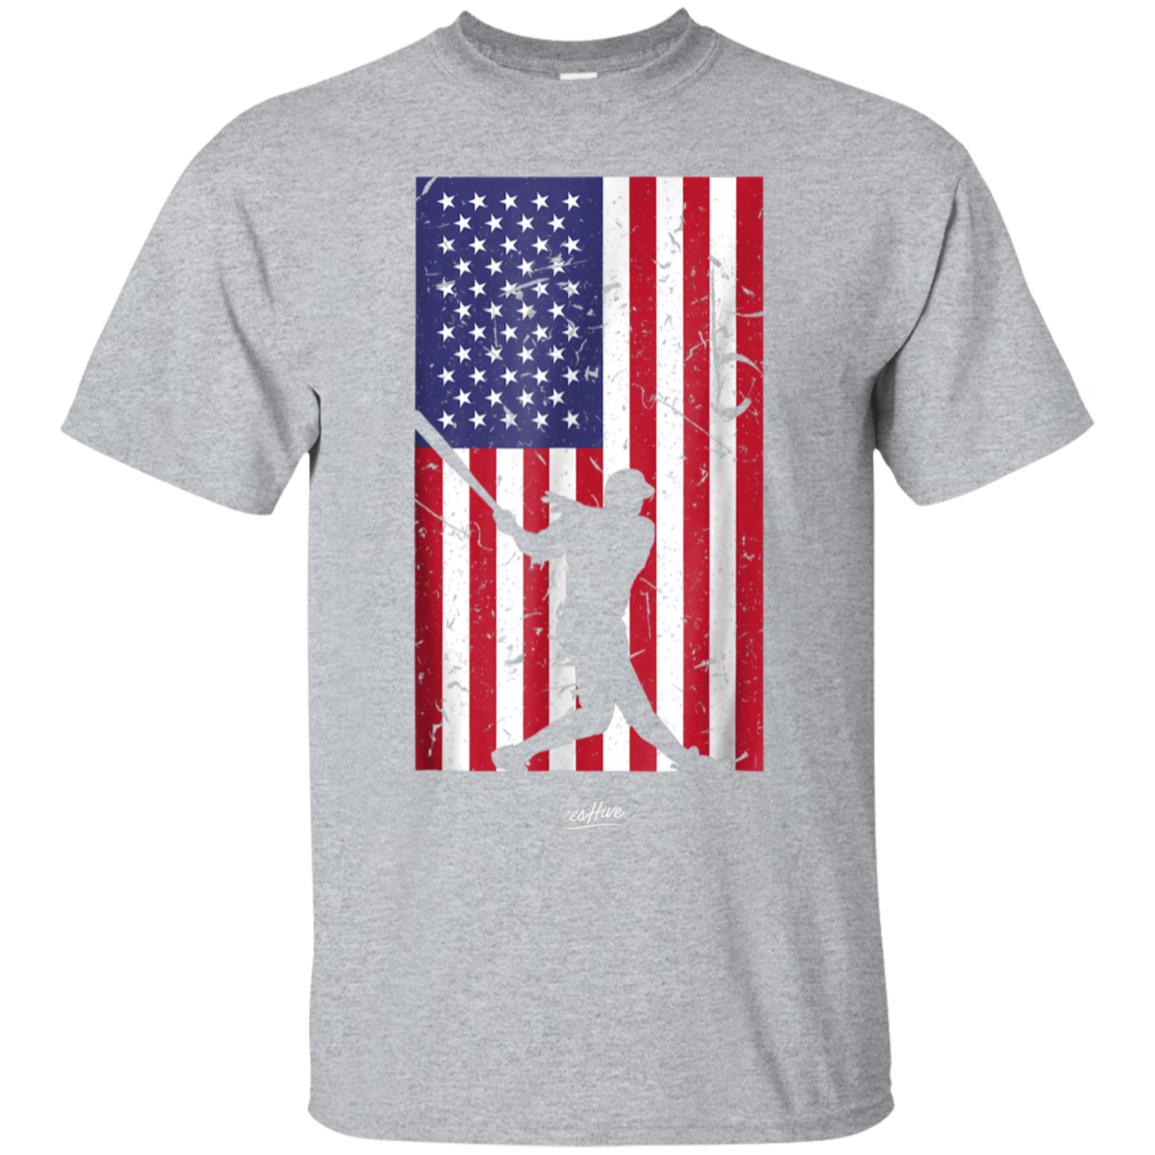 American Flag Baseball Love Distressed Baseball Player Shirt 99promocode